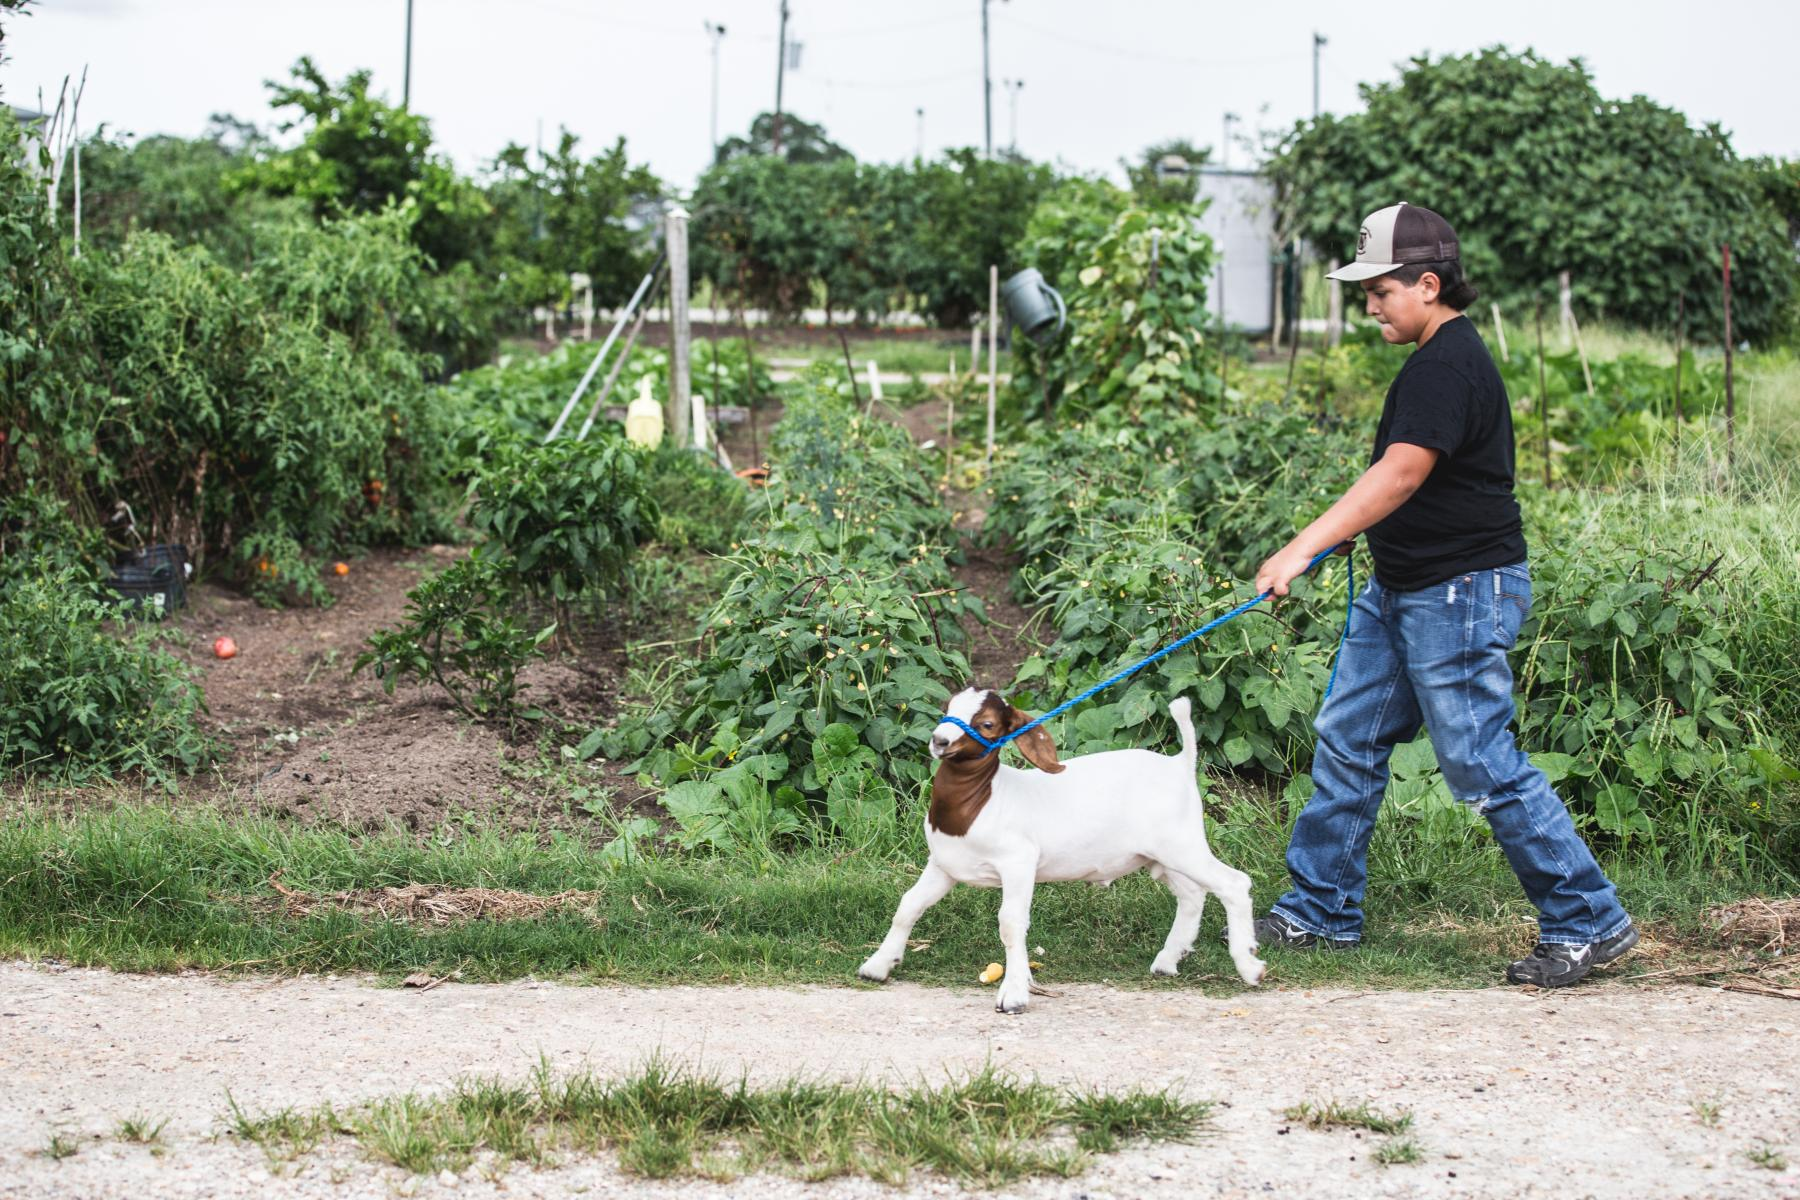 4-H member working with goat